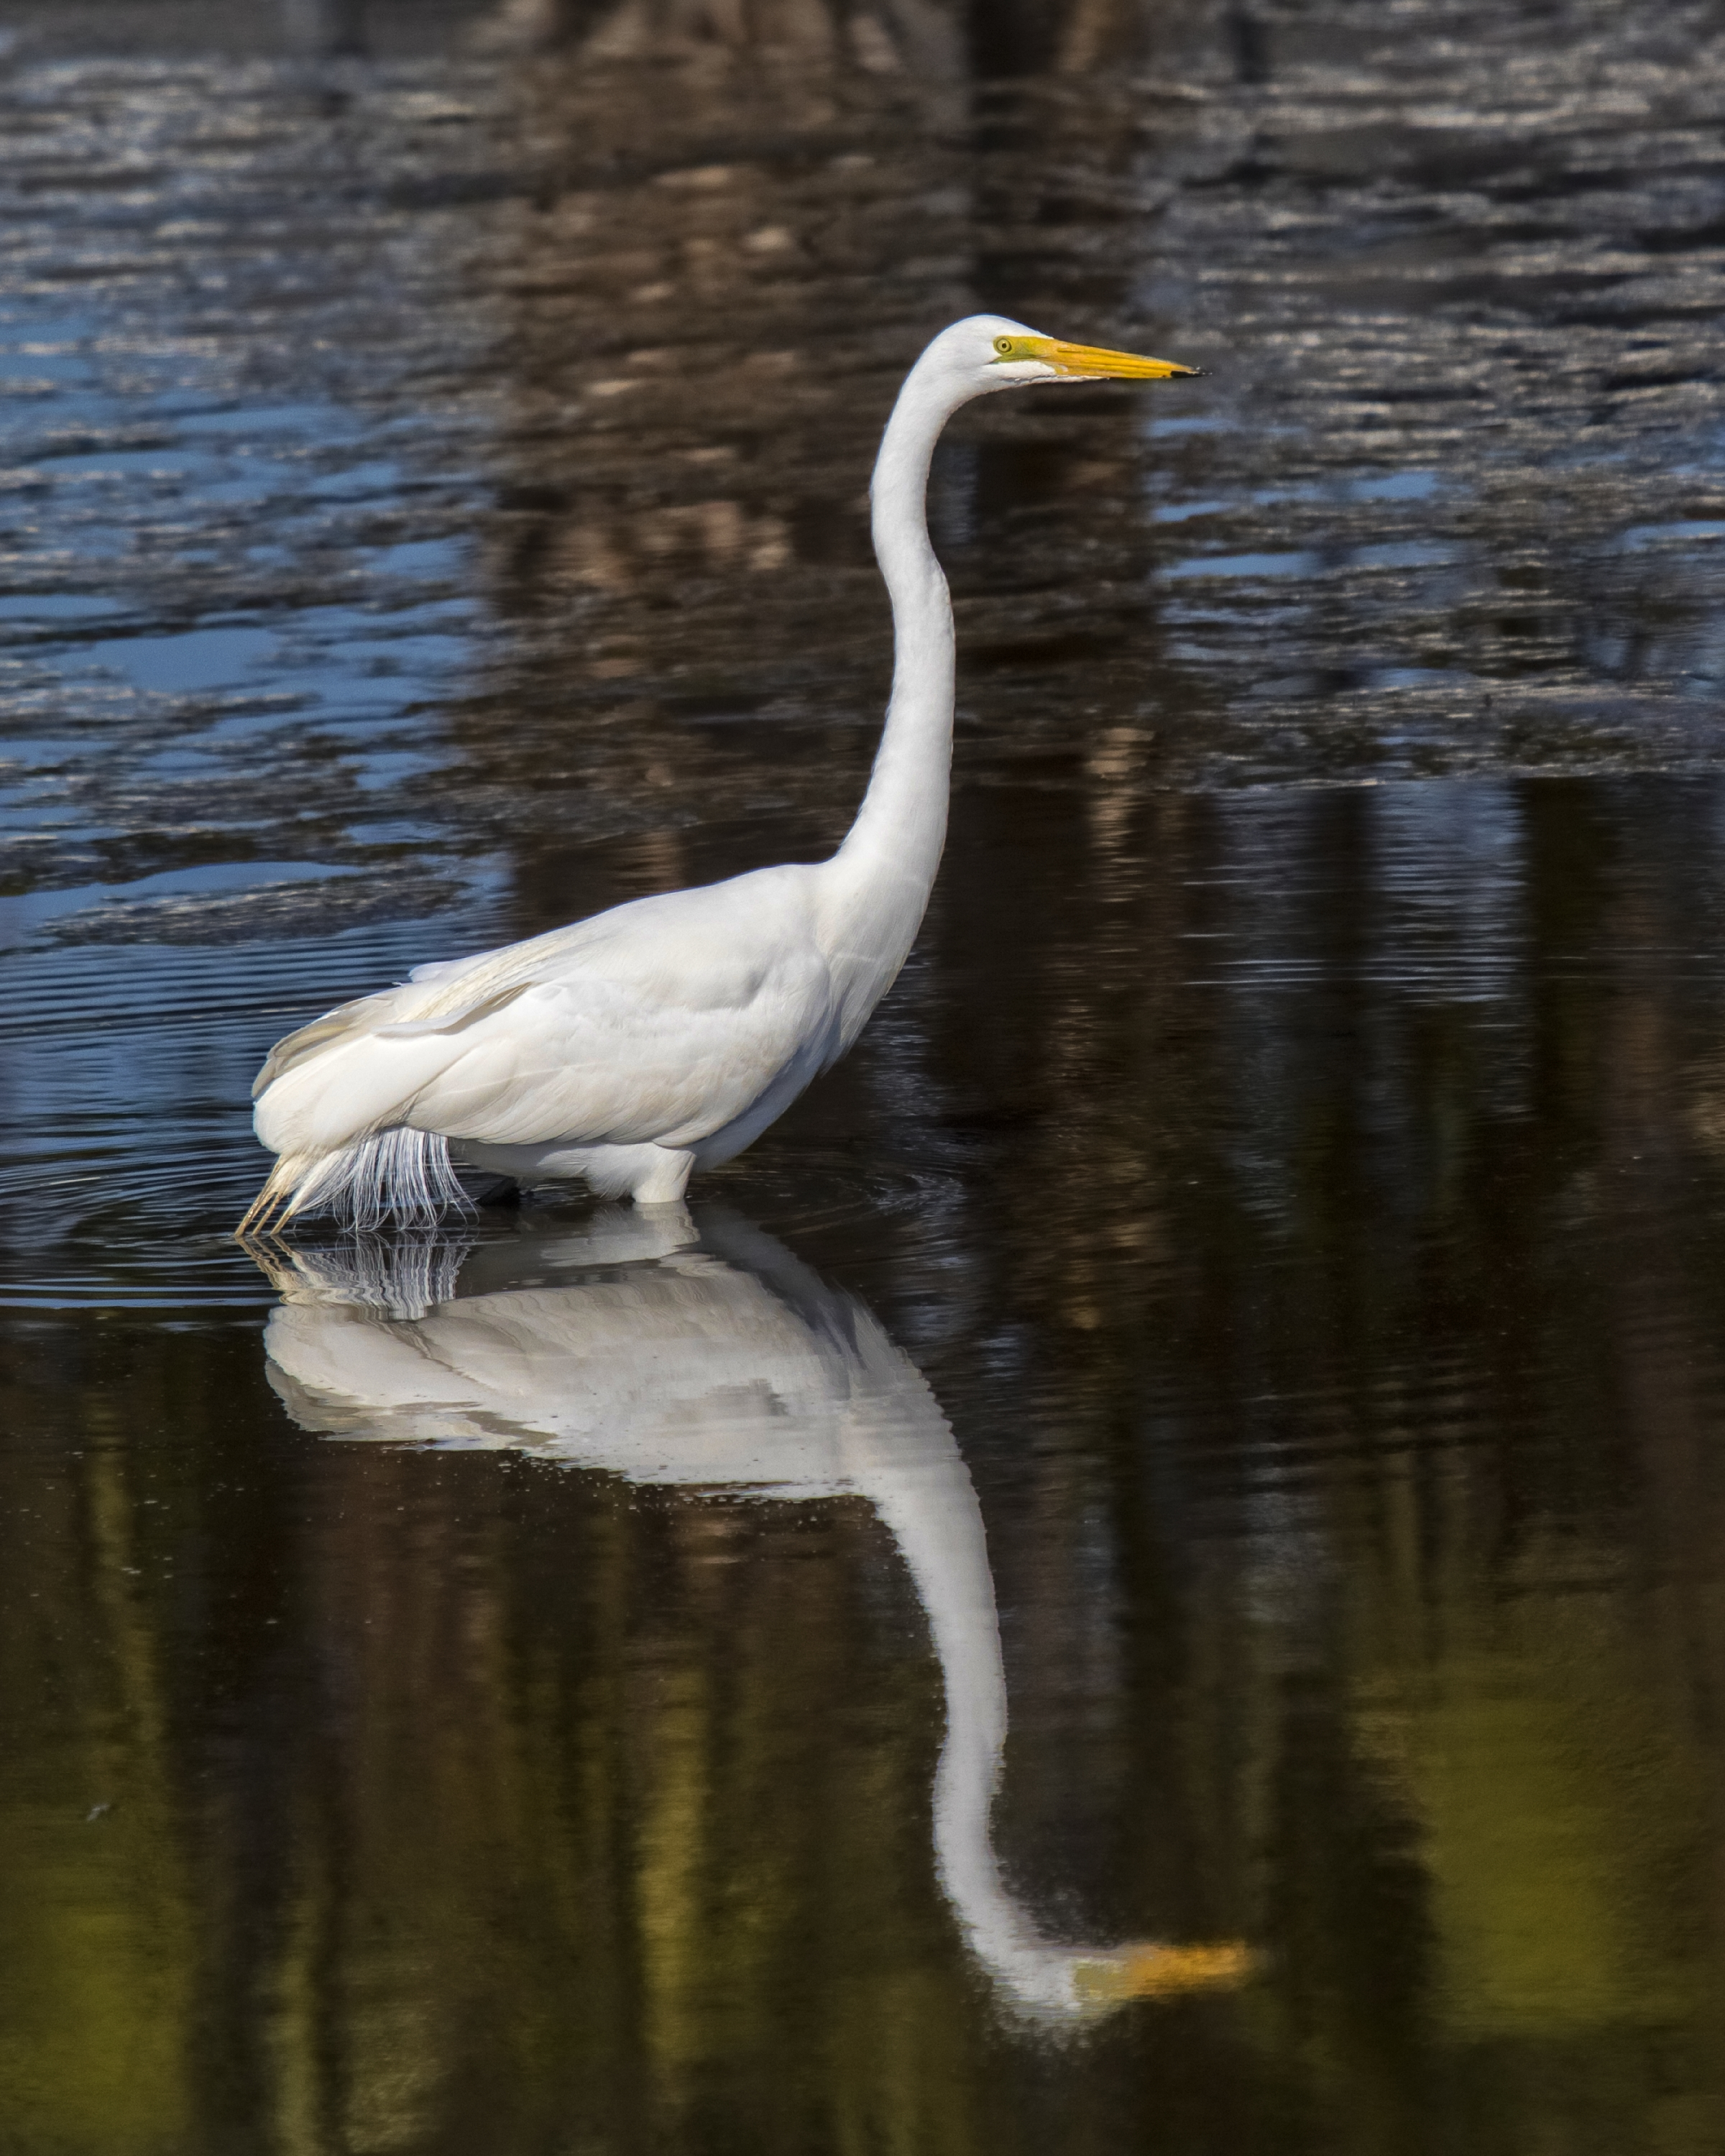 A Great Egret sits patiently in its favorite fishing hole...watching and waiting